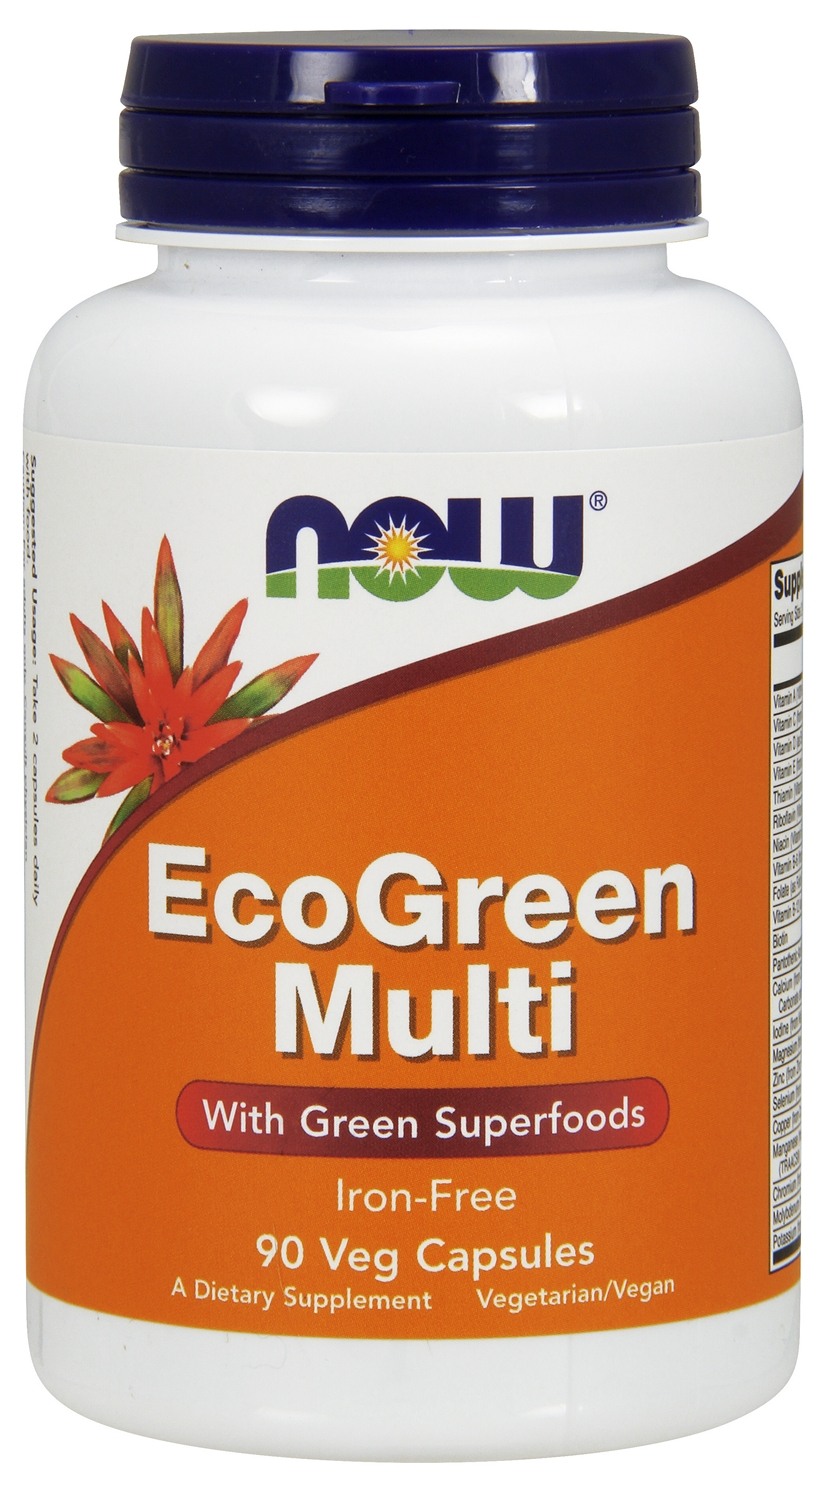 EcoGreen Multi Iron-Free 90 Vcaps by NOW Foods